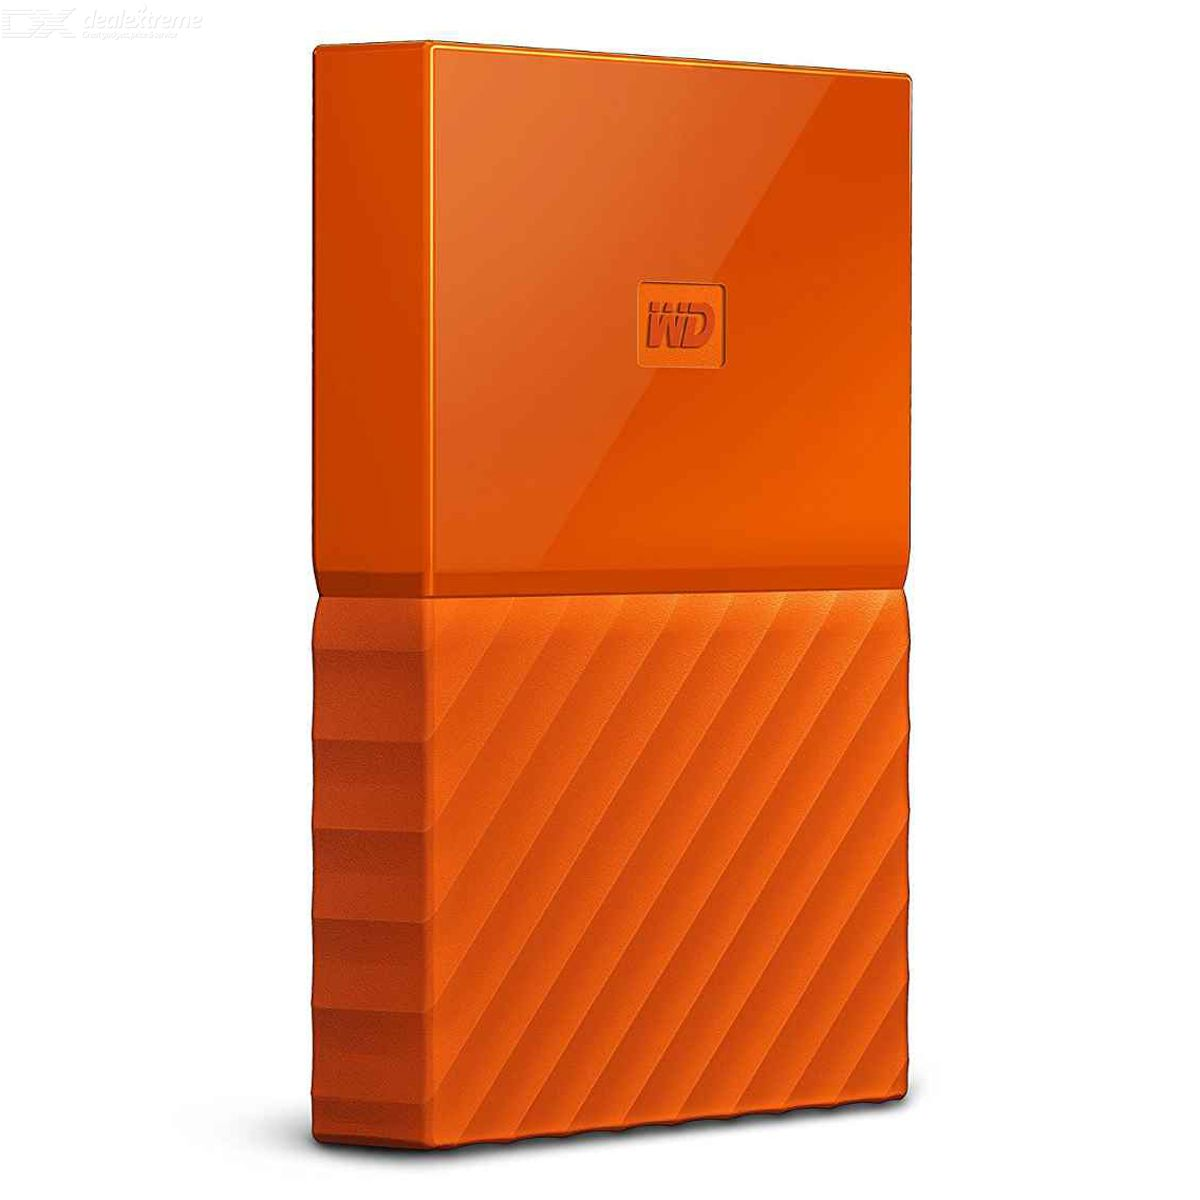 WD My Passport 1TB 2.5quot External Drive USB3.0 WDBYNN0010BOR - Orange